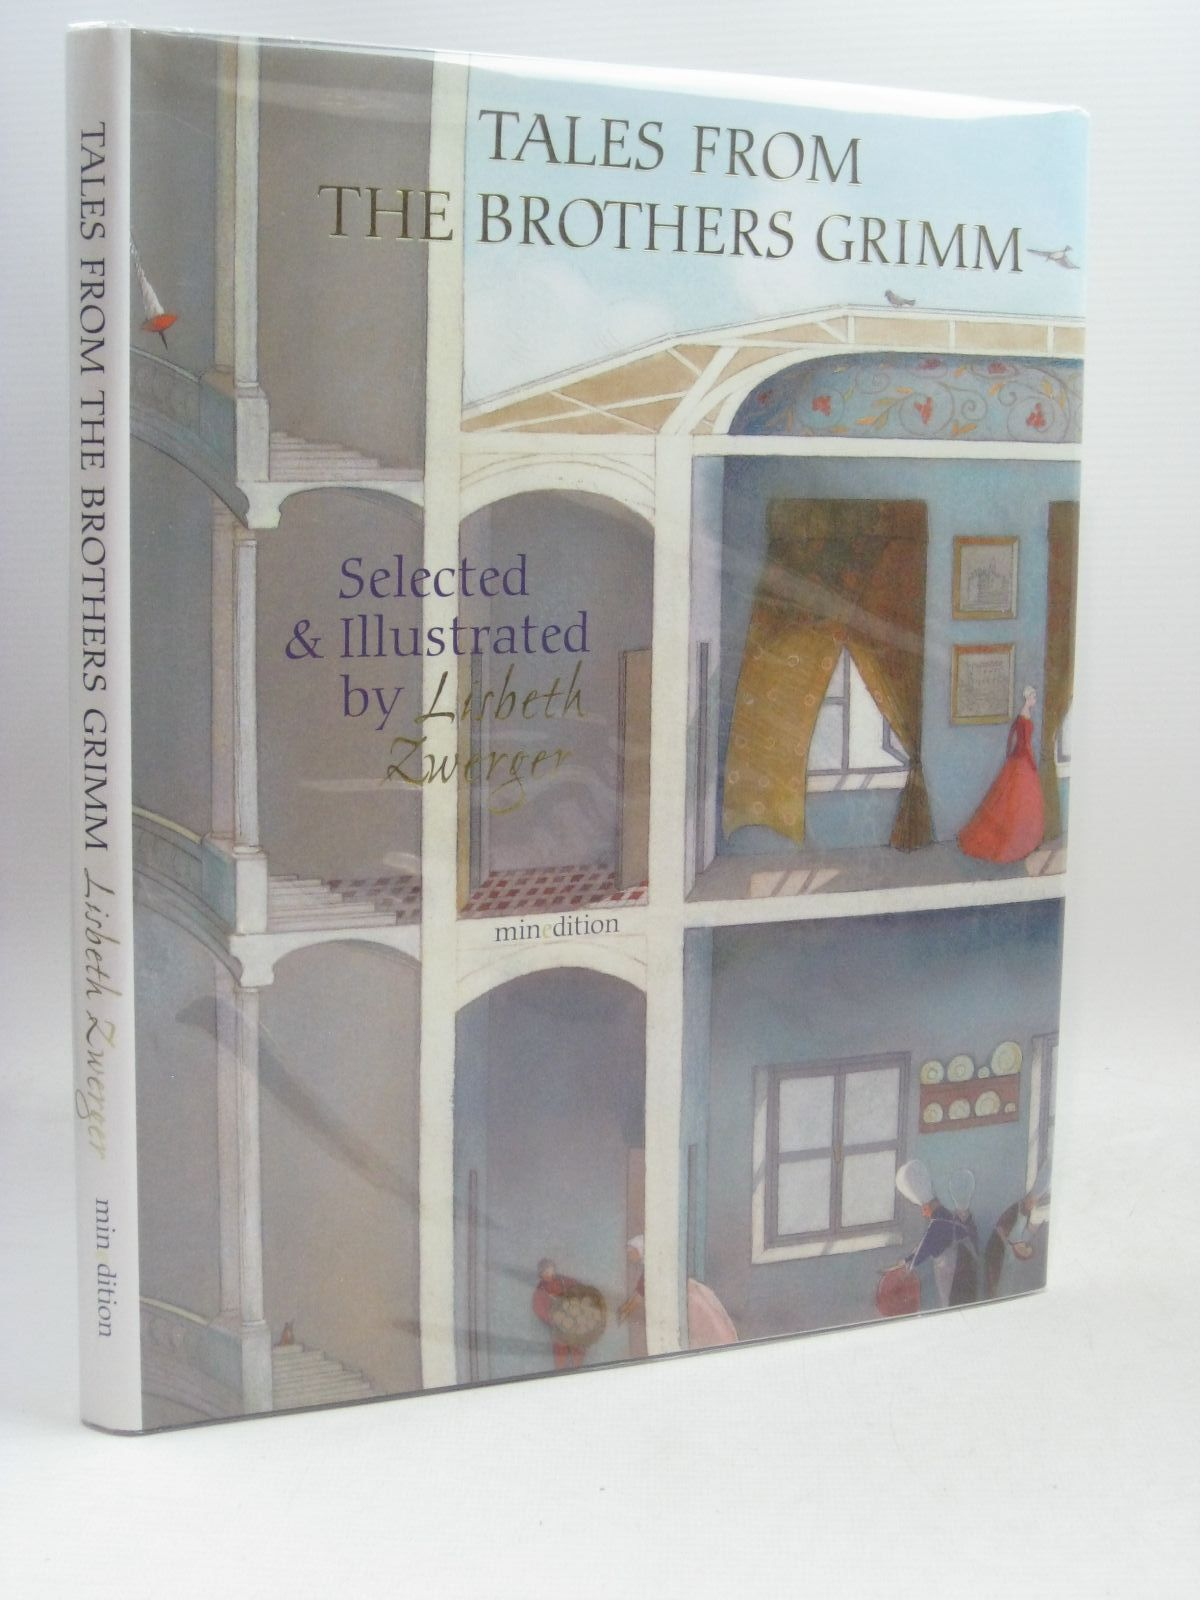 Photo of TALES FROM THE BROTHERS GRIMM written by Zwerger, Lisbeth illustrated by Zwerger, Lisbeth published by Michael Neugebauer Ltd (STOCK CODE: 1405670)  for sale by Stella & Rose's Books